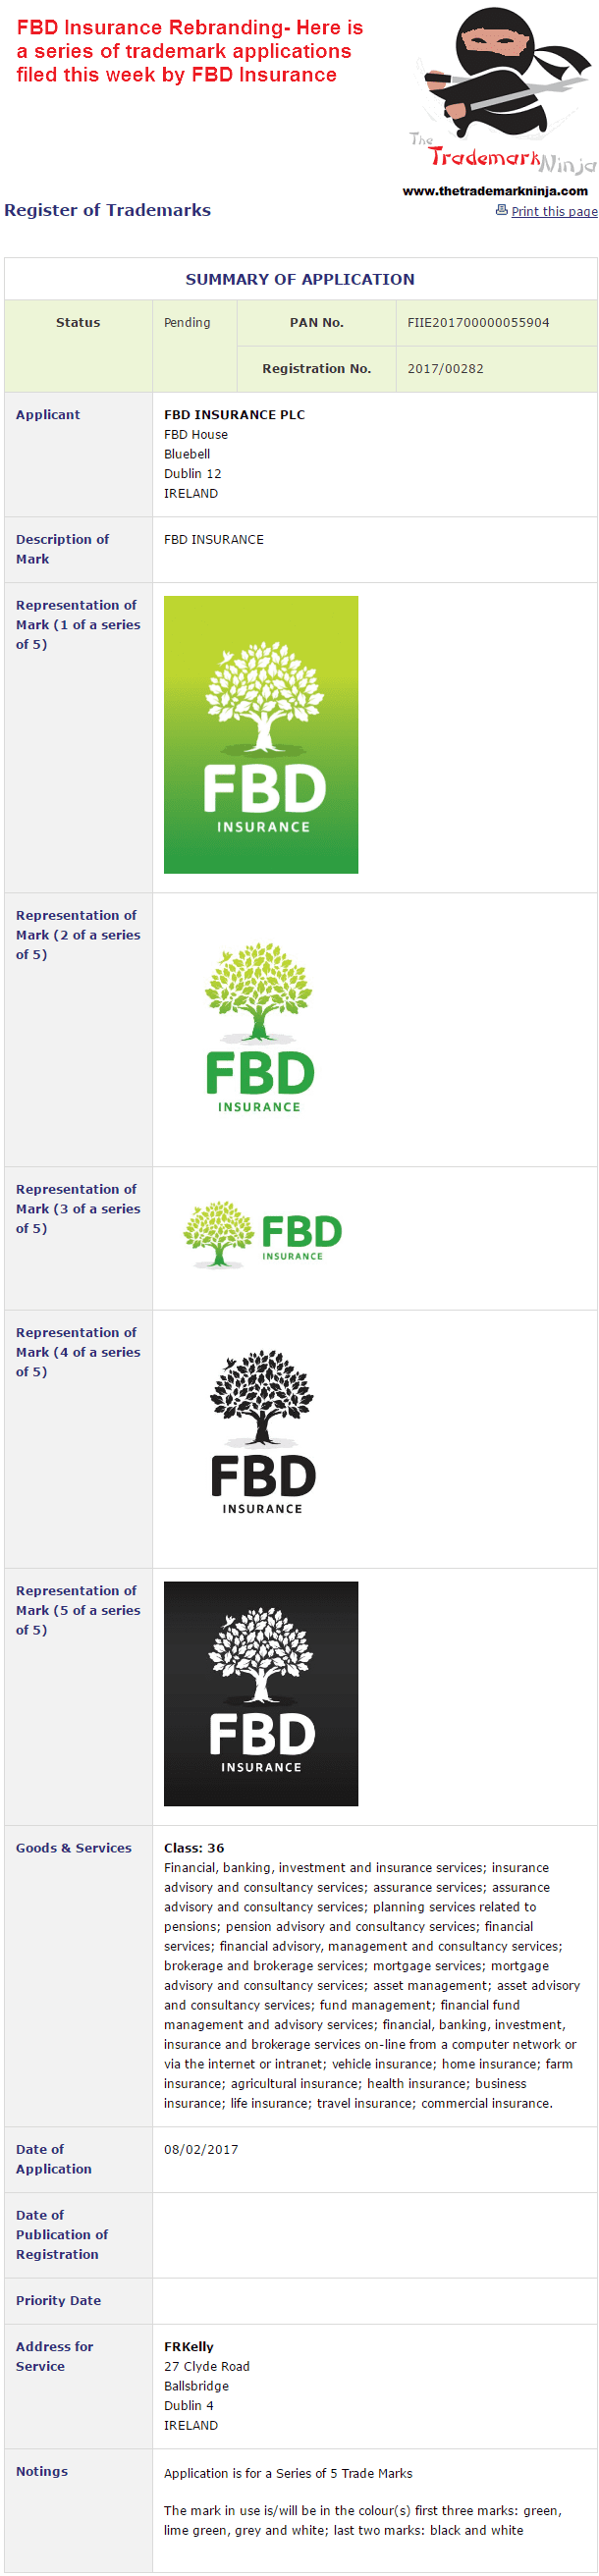 FBD Insurance New Logo As Part Of Corporate Re-brand